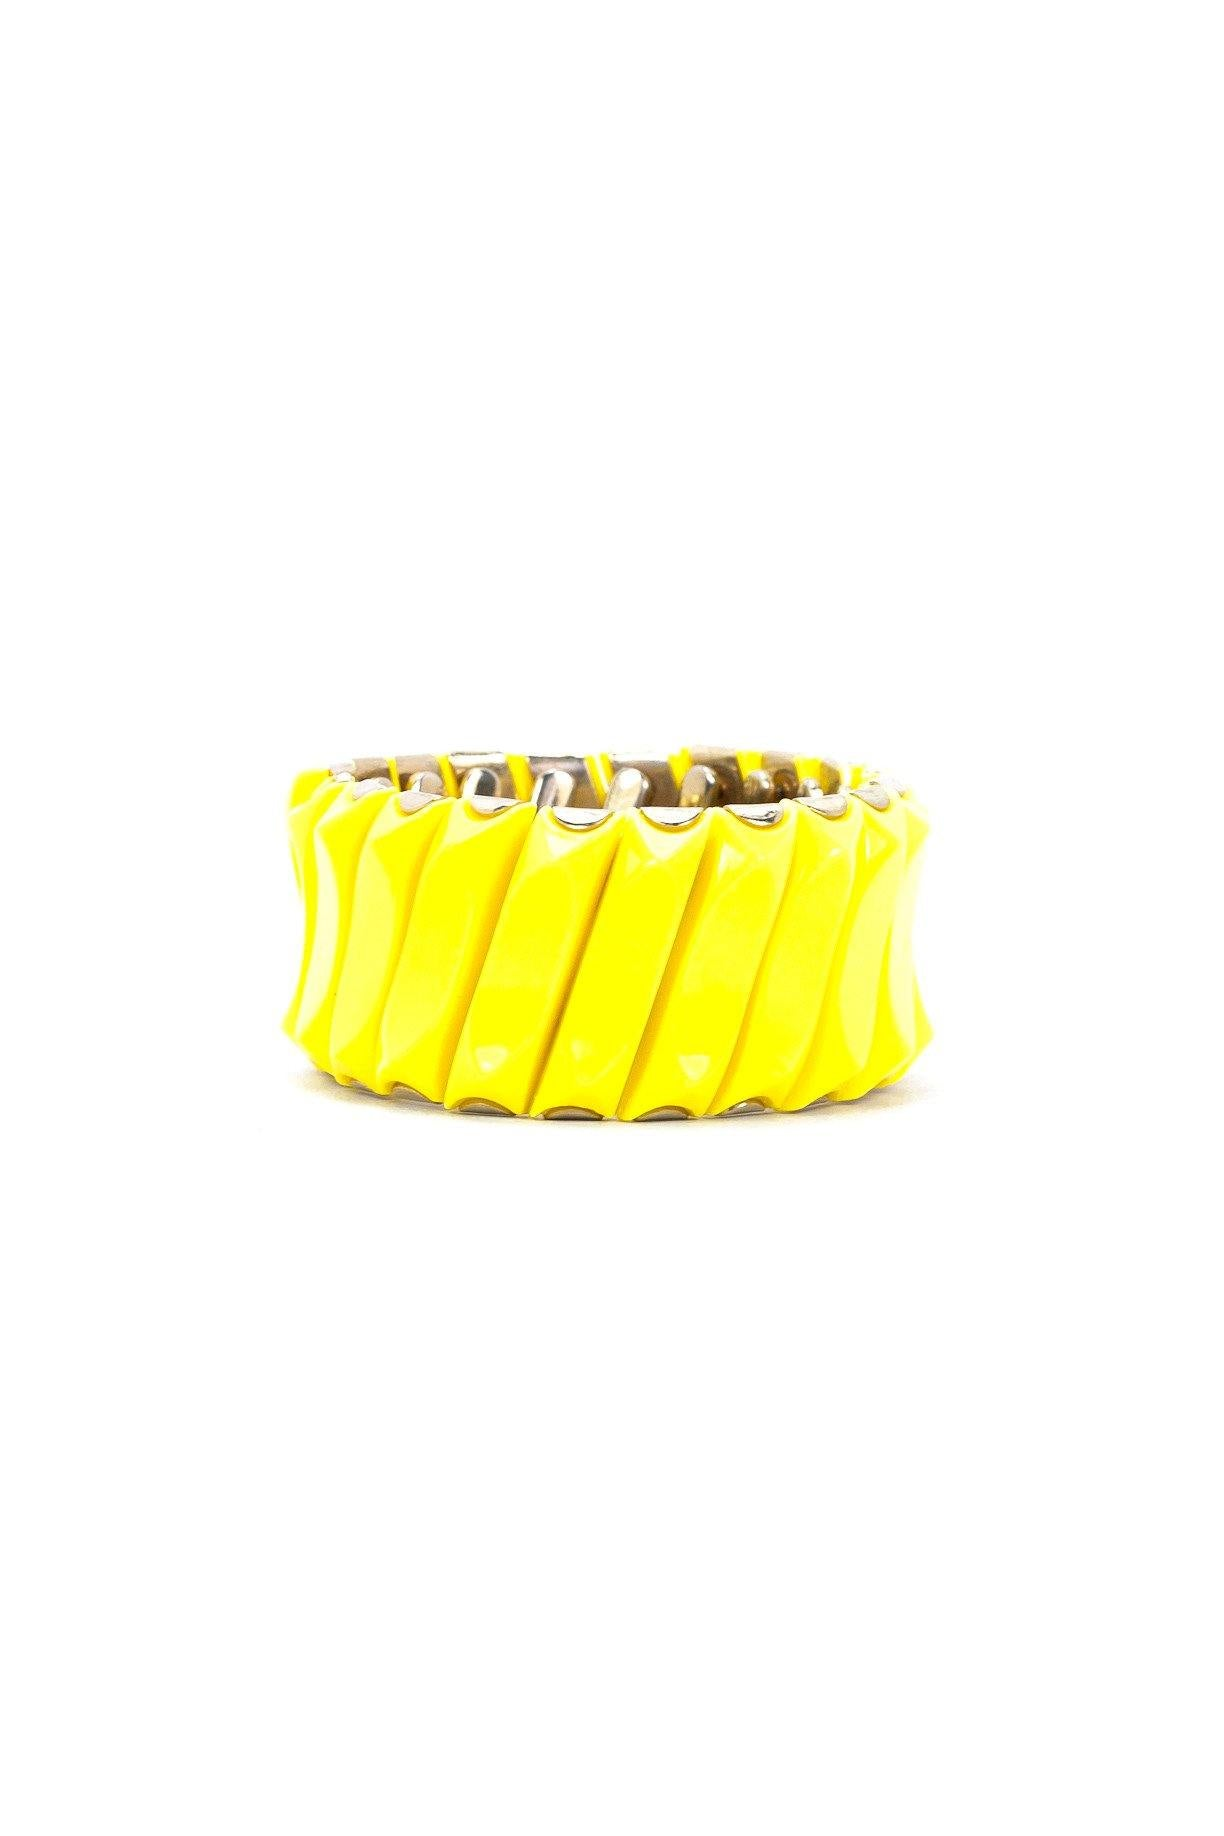 50's__Vintage__Yellow Expansion Bracelet